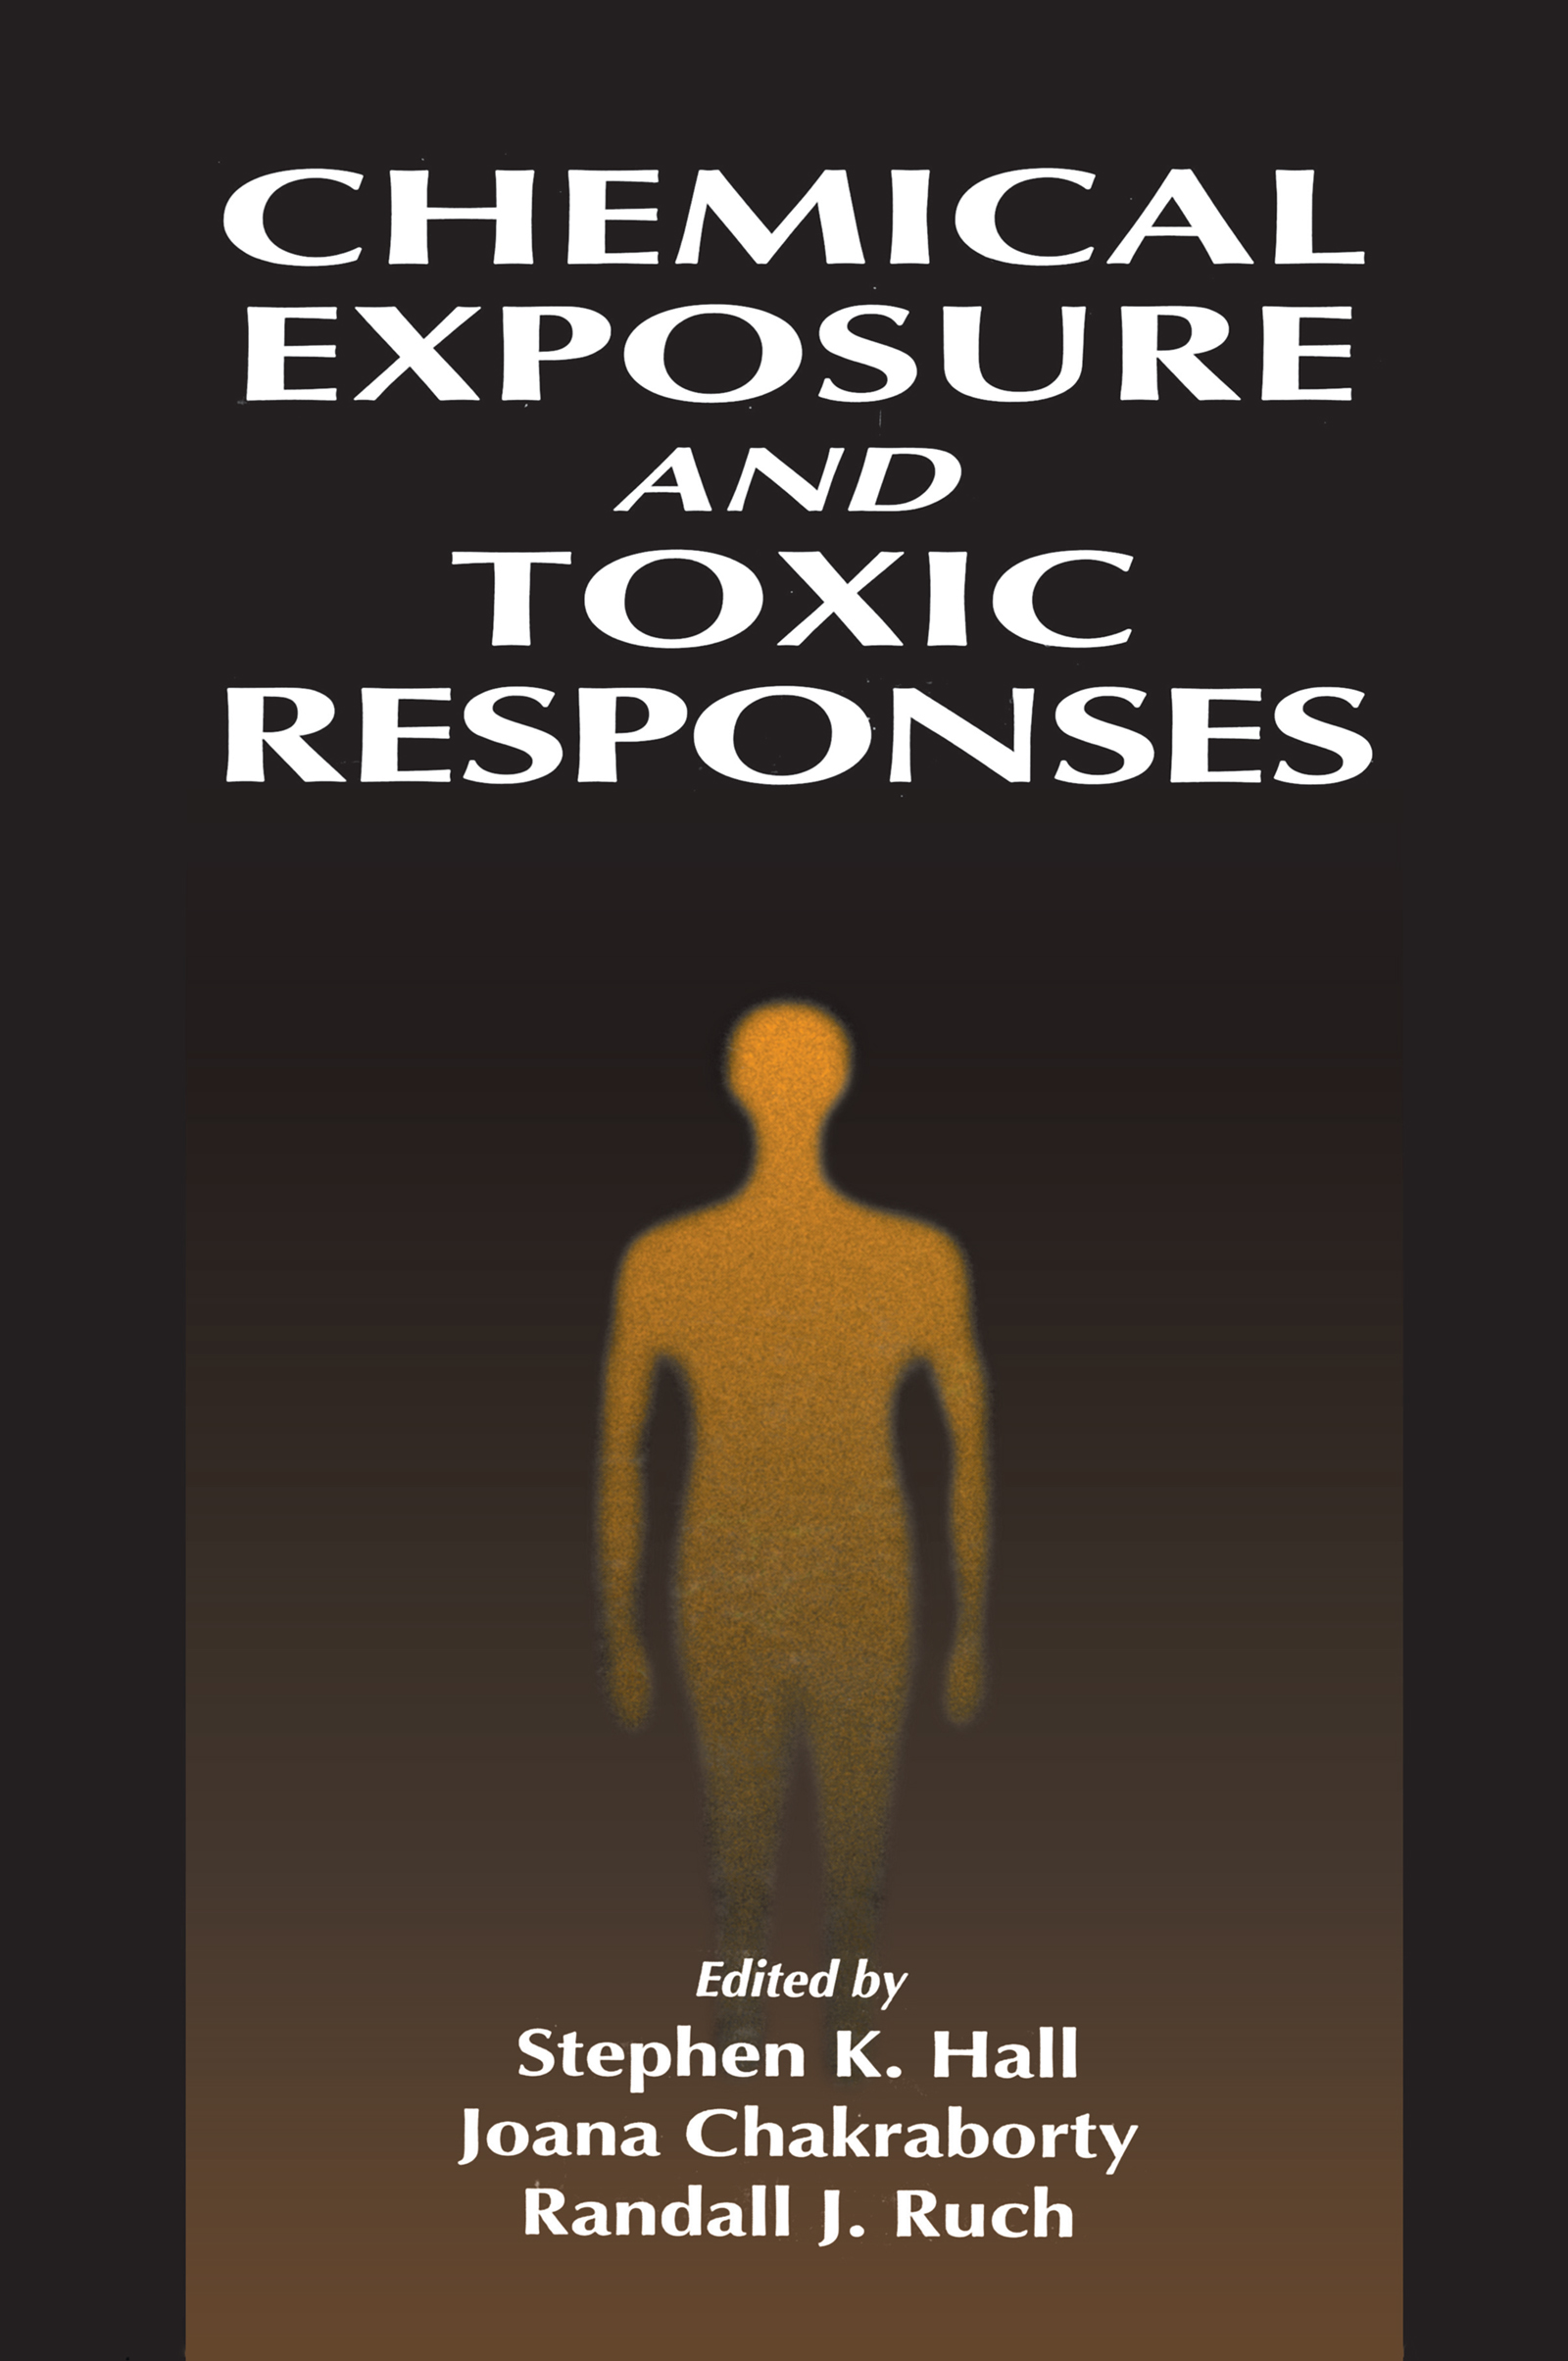 Solvent Exposure and Toxic Responses